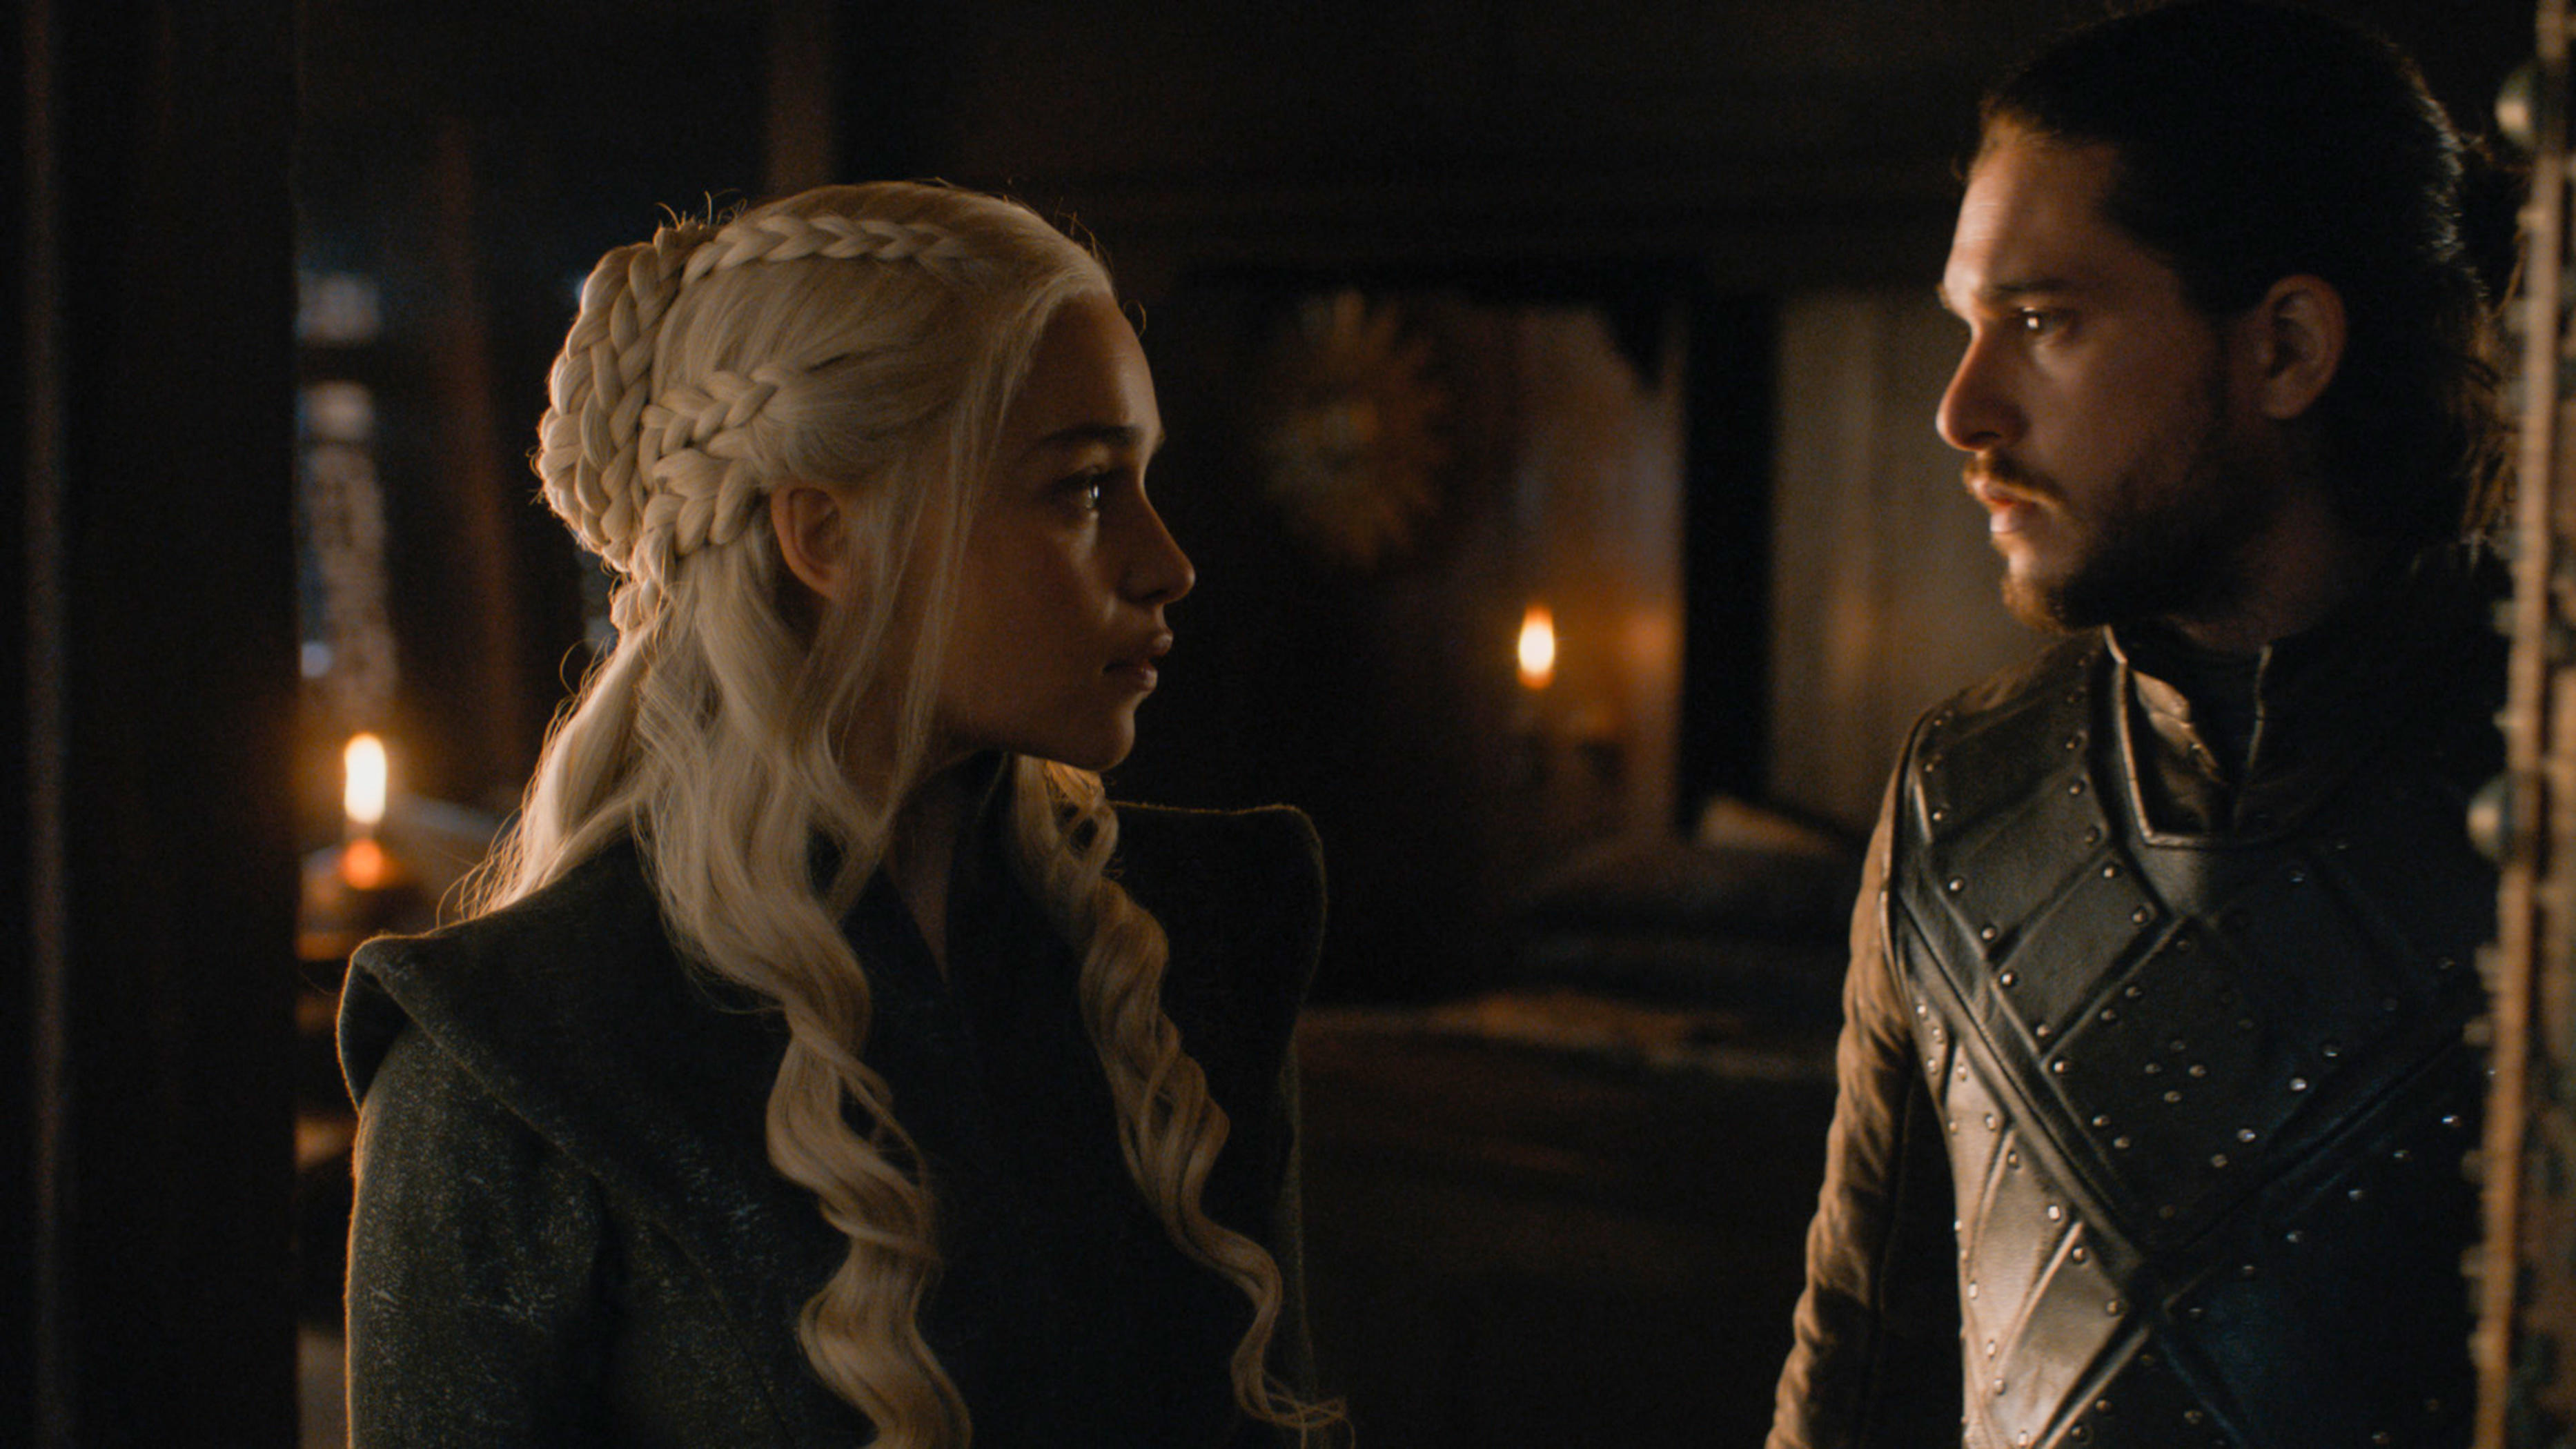 Debunked: Daenerys will become a White Walker